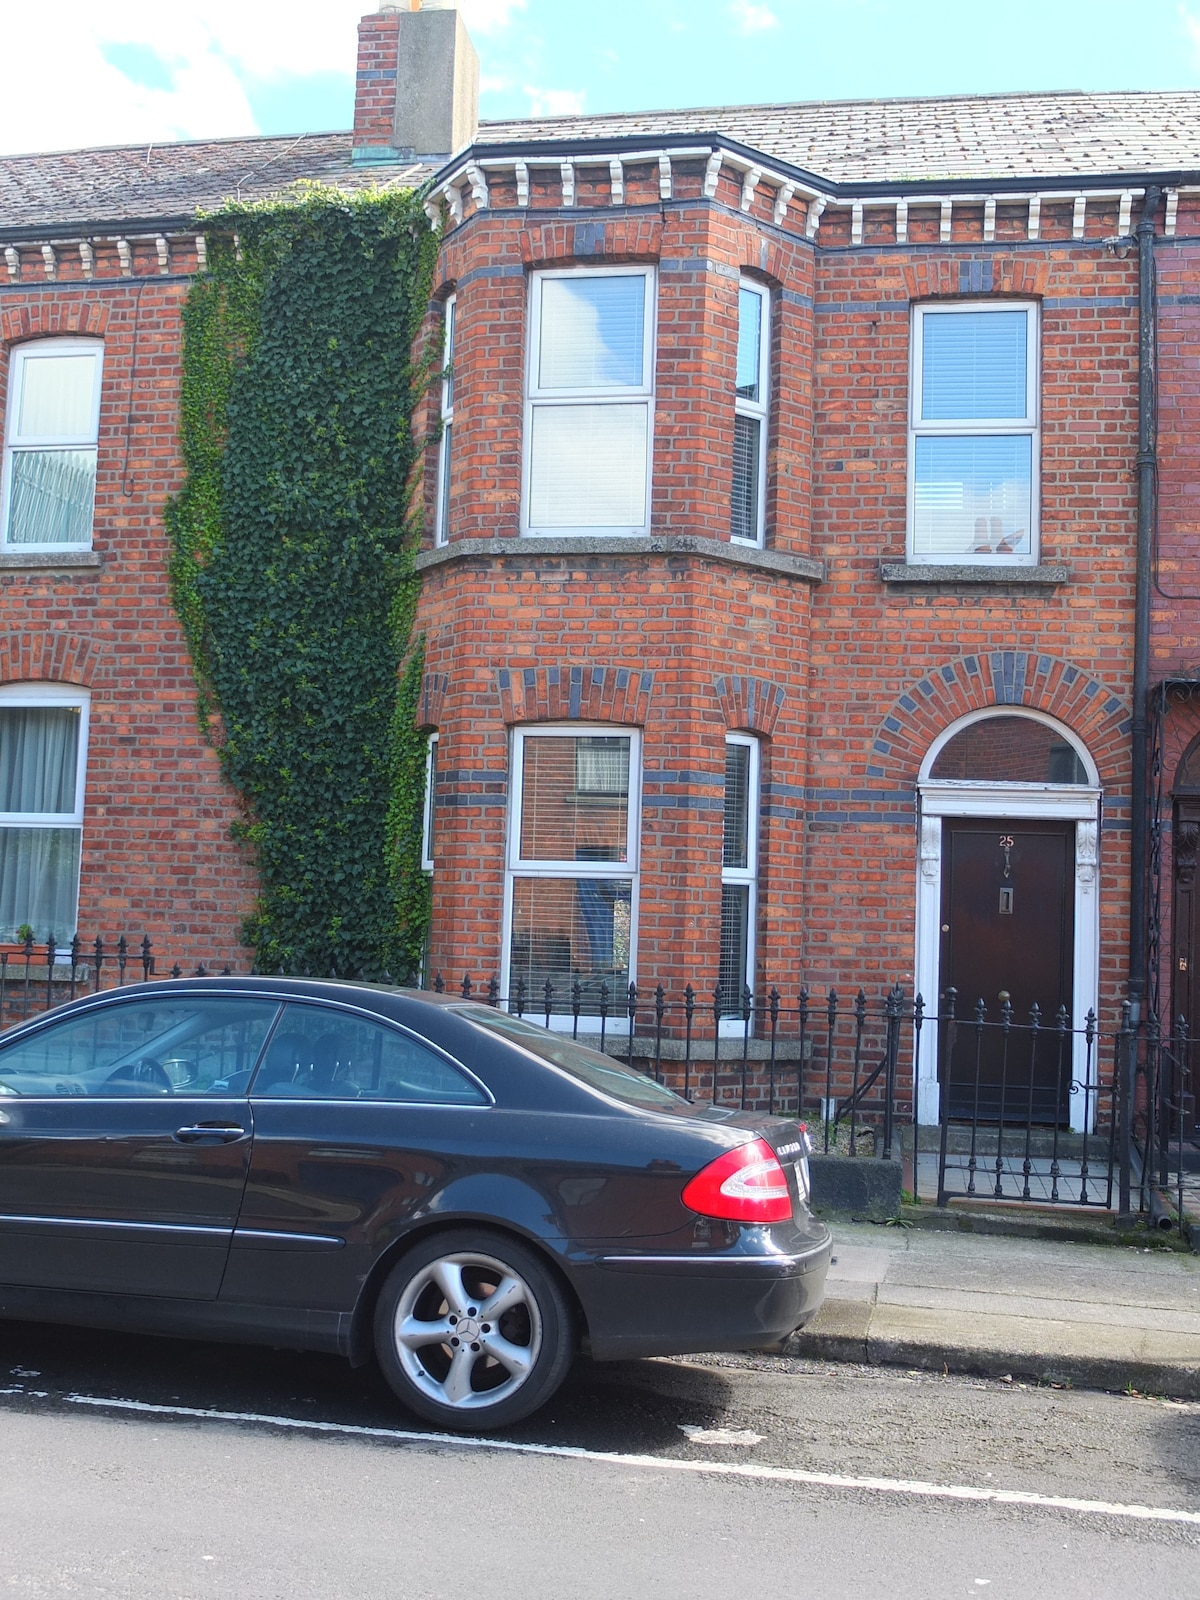 1890s redbrick house with on-street parking